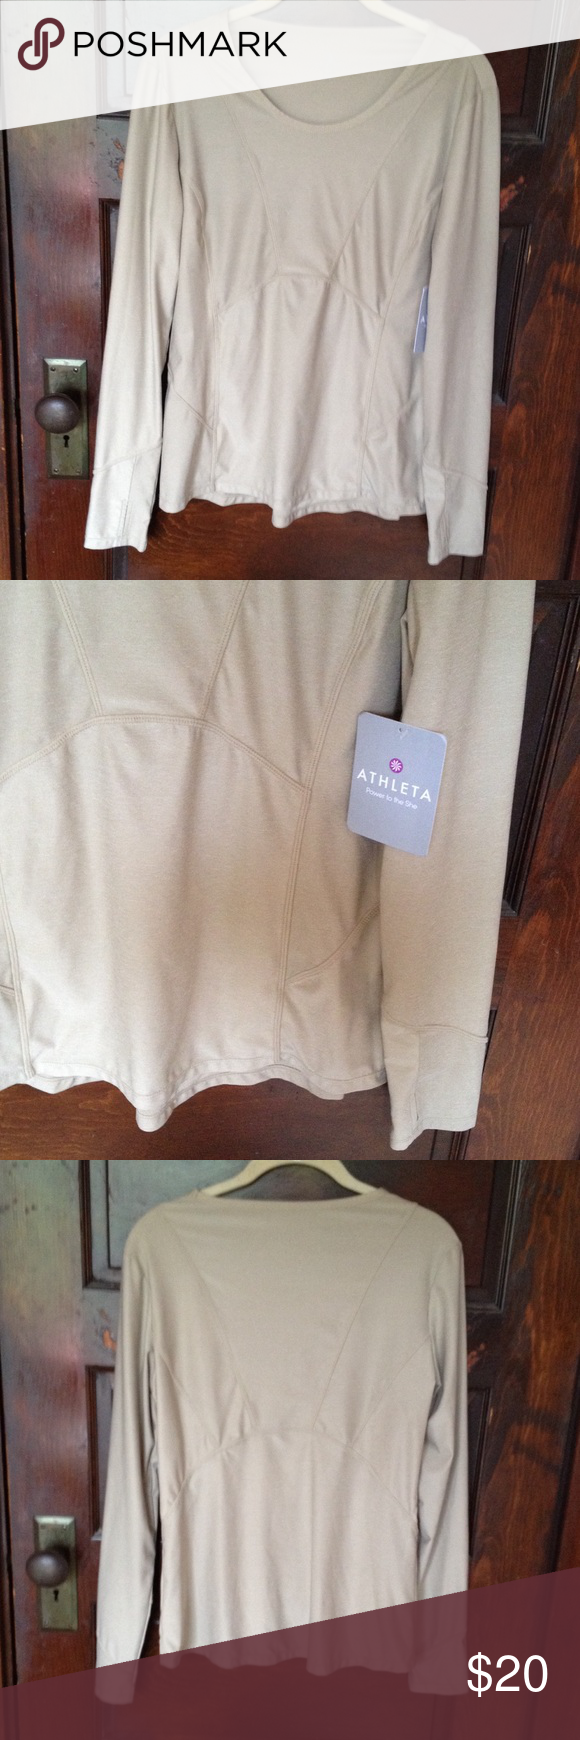 ATHLETA NWT Canyon Lands long sleeve top. ATHLETA NWT Canyon Lands long sleeve top.   Beige / ecru color. Athleta Tops Tees - Long Sleeve